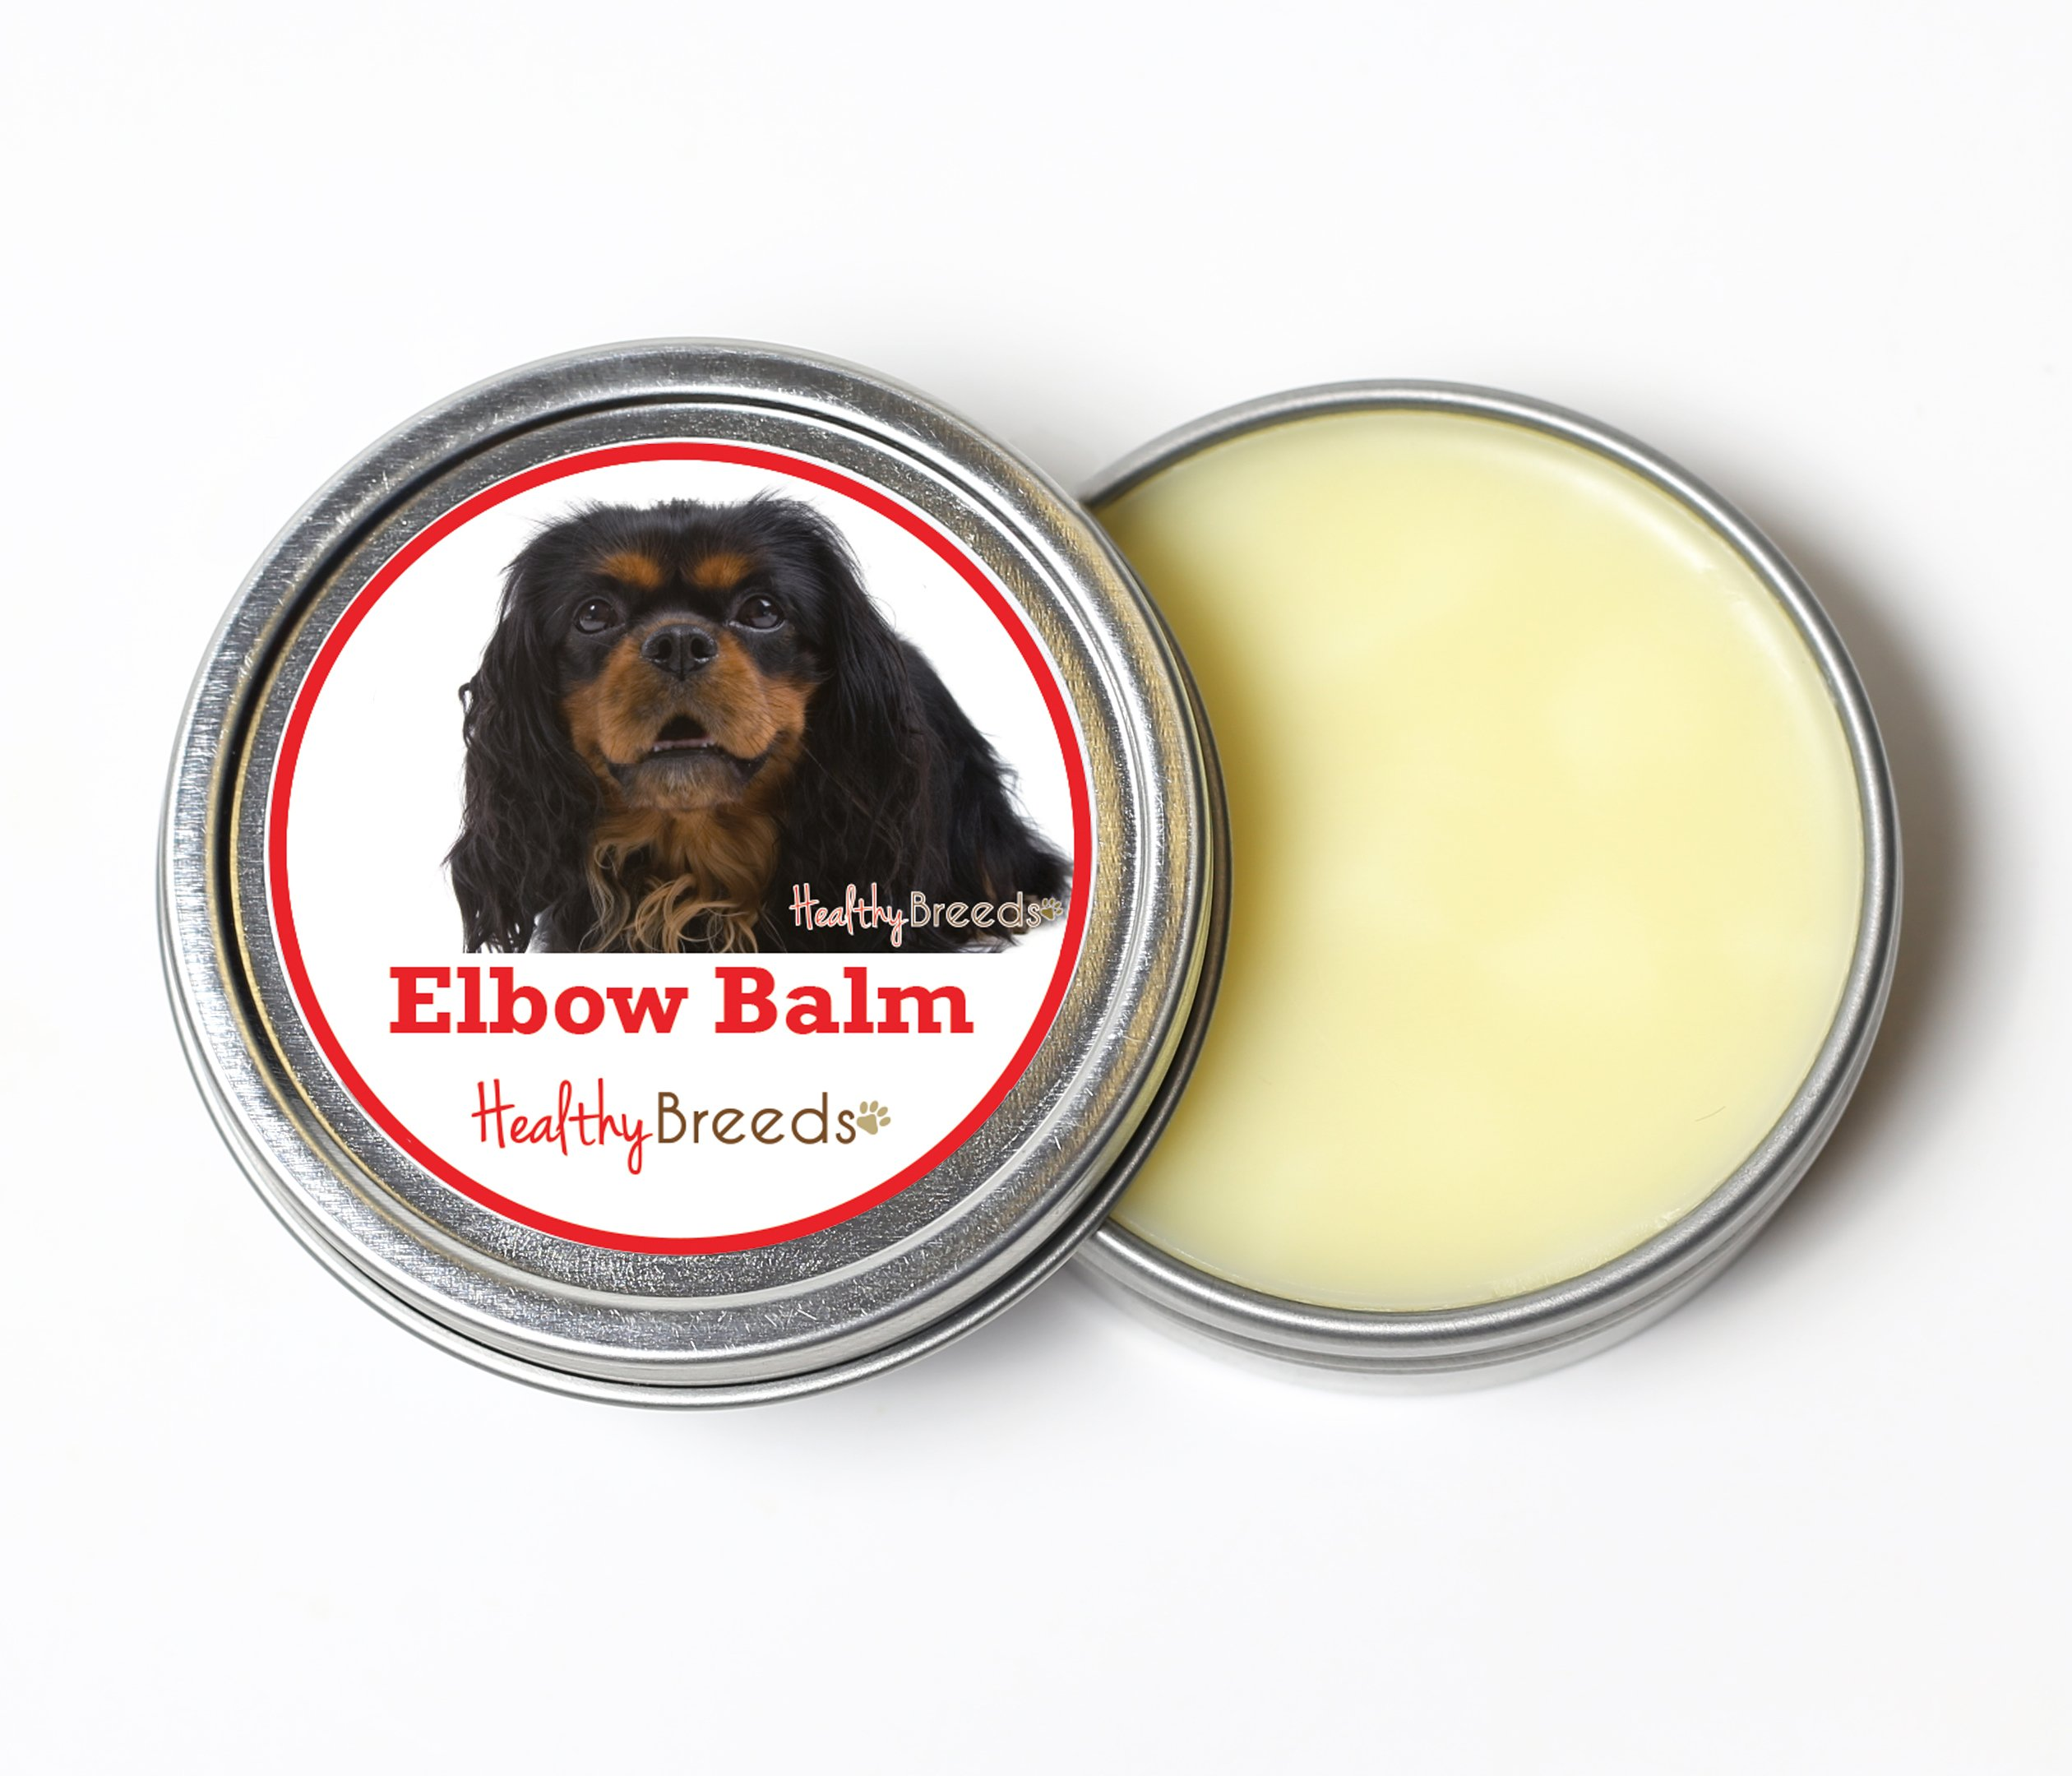 Healthy Breeds Dog Elbow Protector Balm for English Toy Spaniel - Over 200 Breeds - All Natural & Organic Oils Heal Dry Cracked & Chapped Skin - Unscented Formula - 2 oz Tin